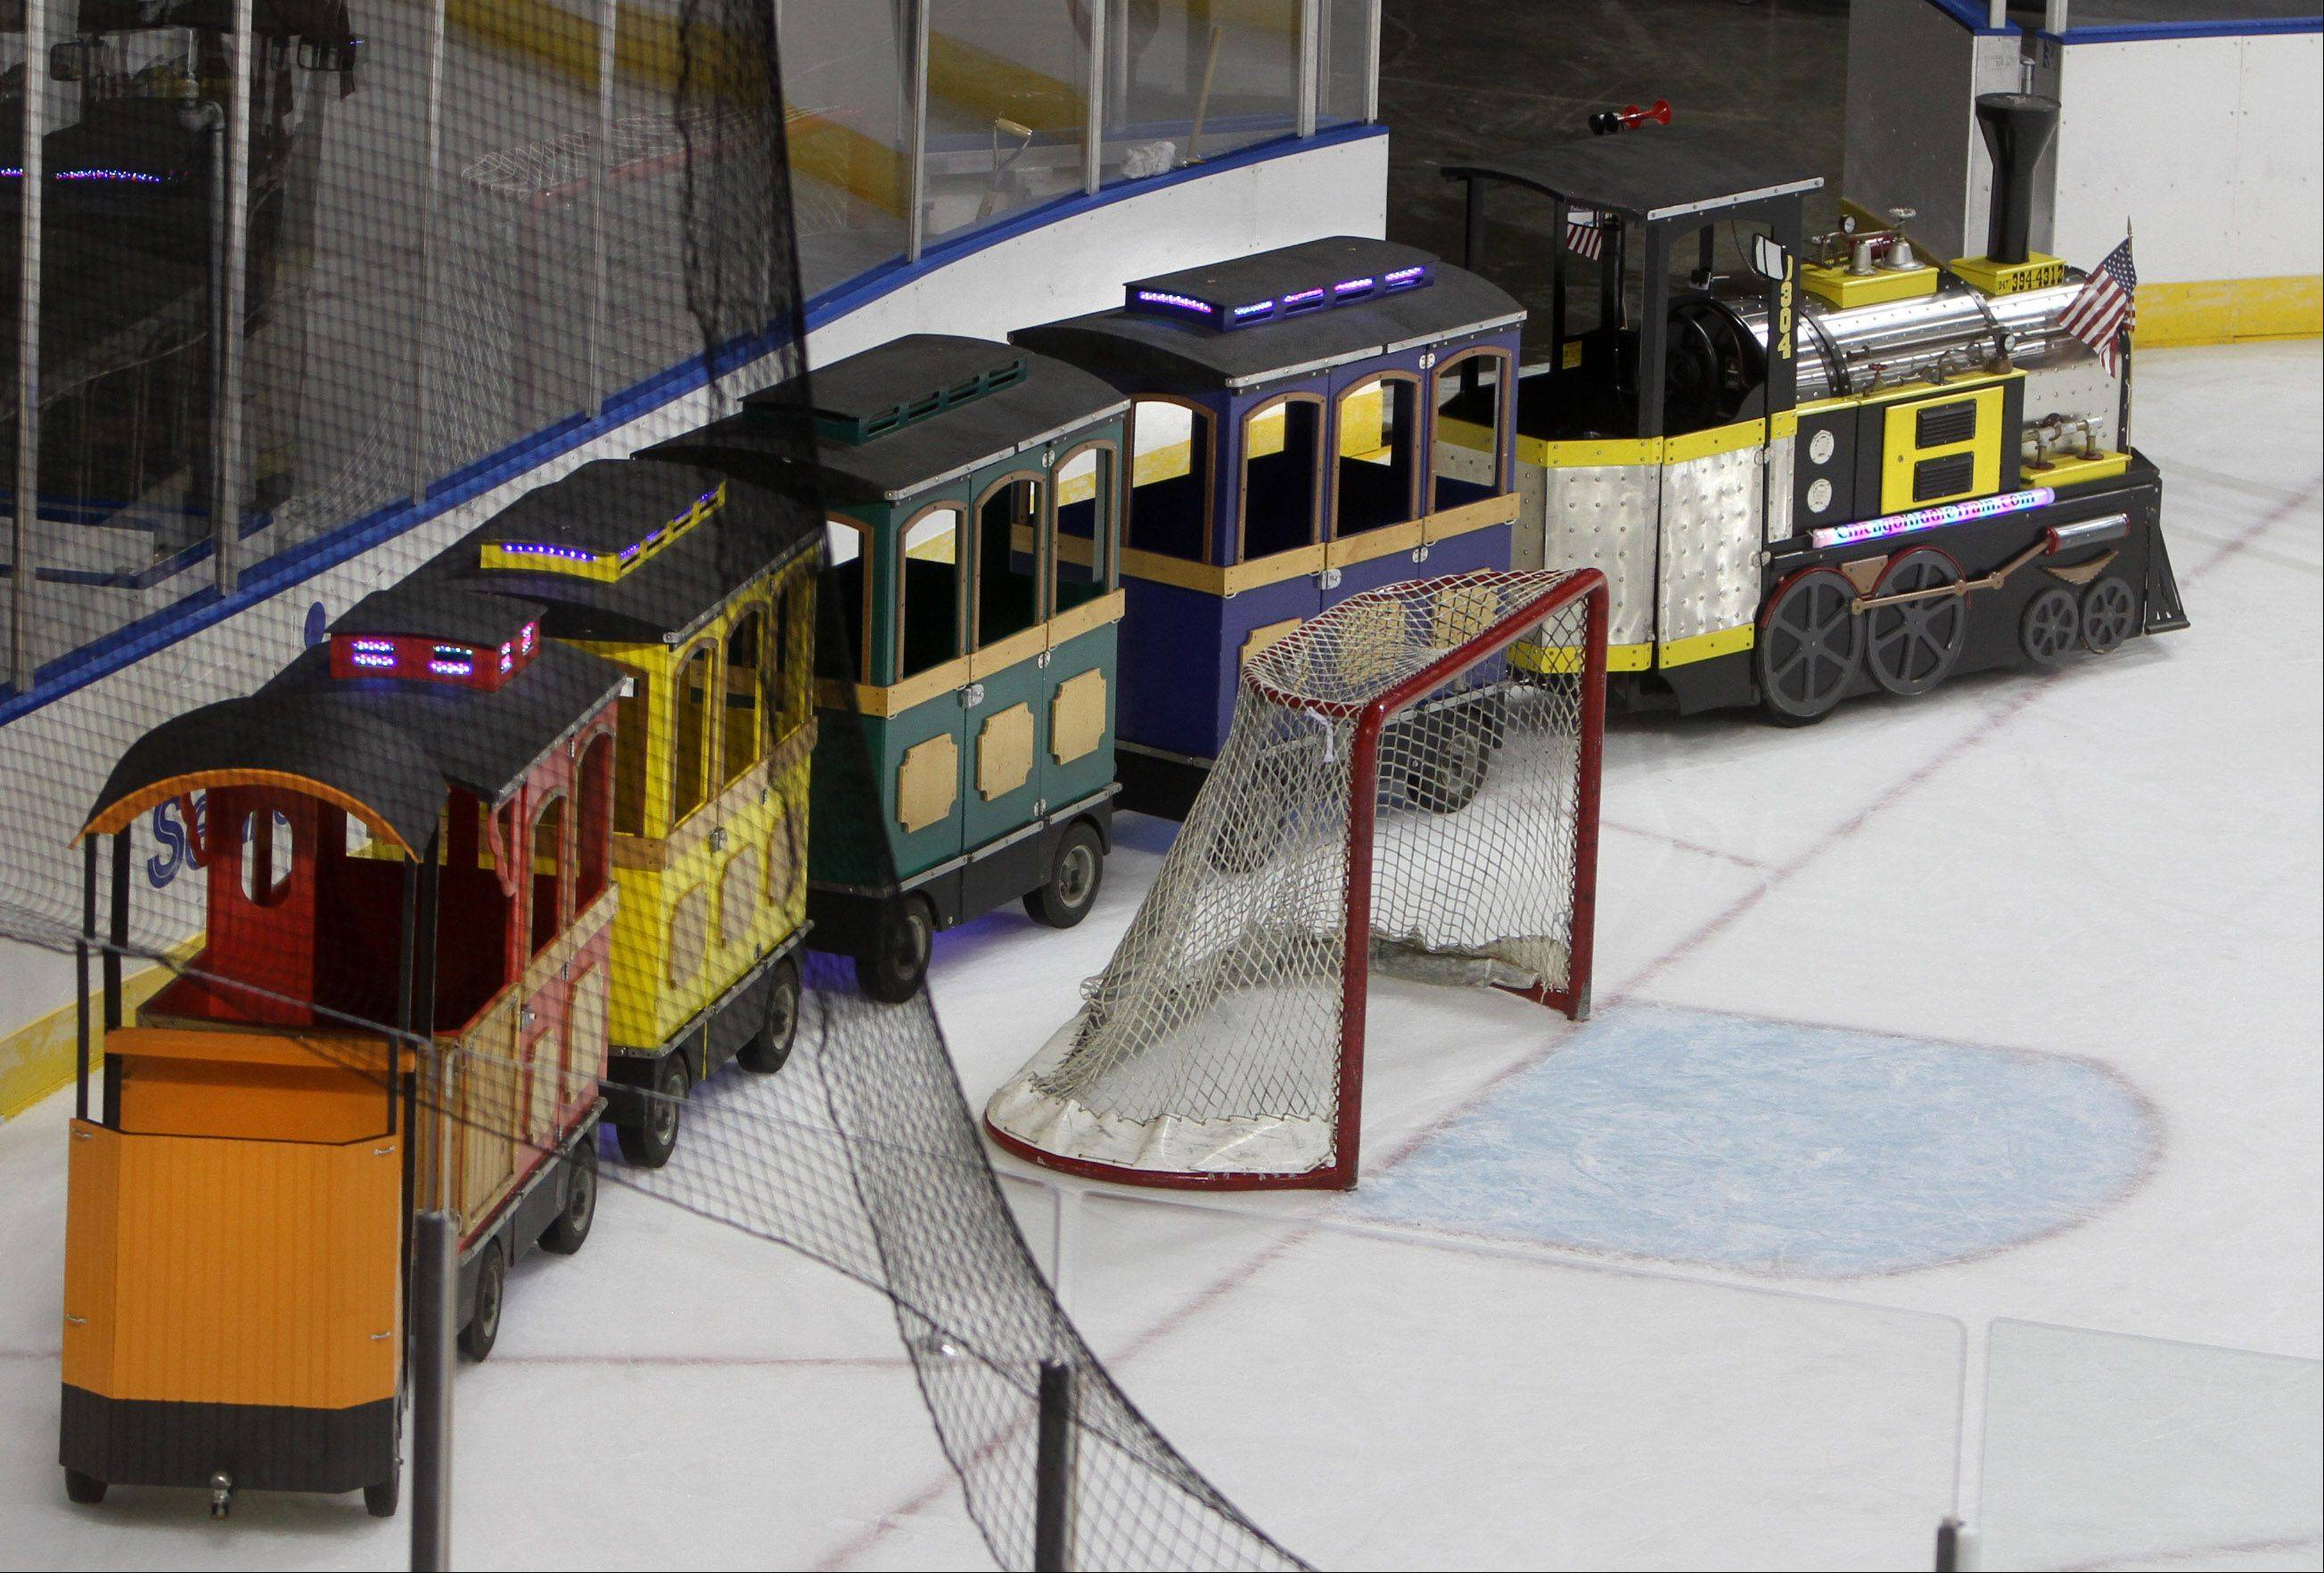 Kids will be able to ride a train around the ice before Chicago Express hockey games at the Sears Centre in Hoffman Estates.